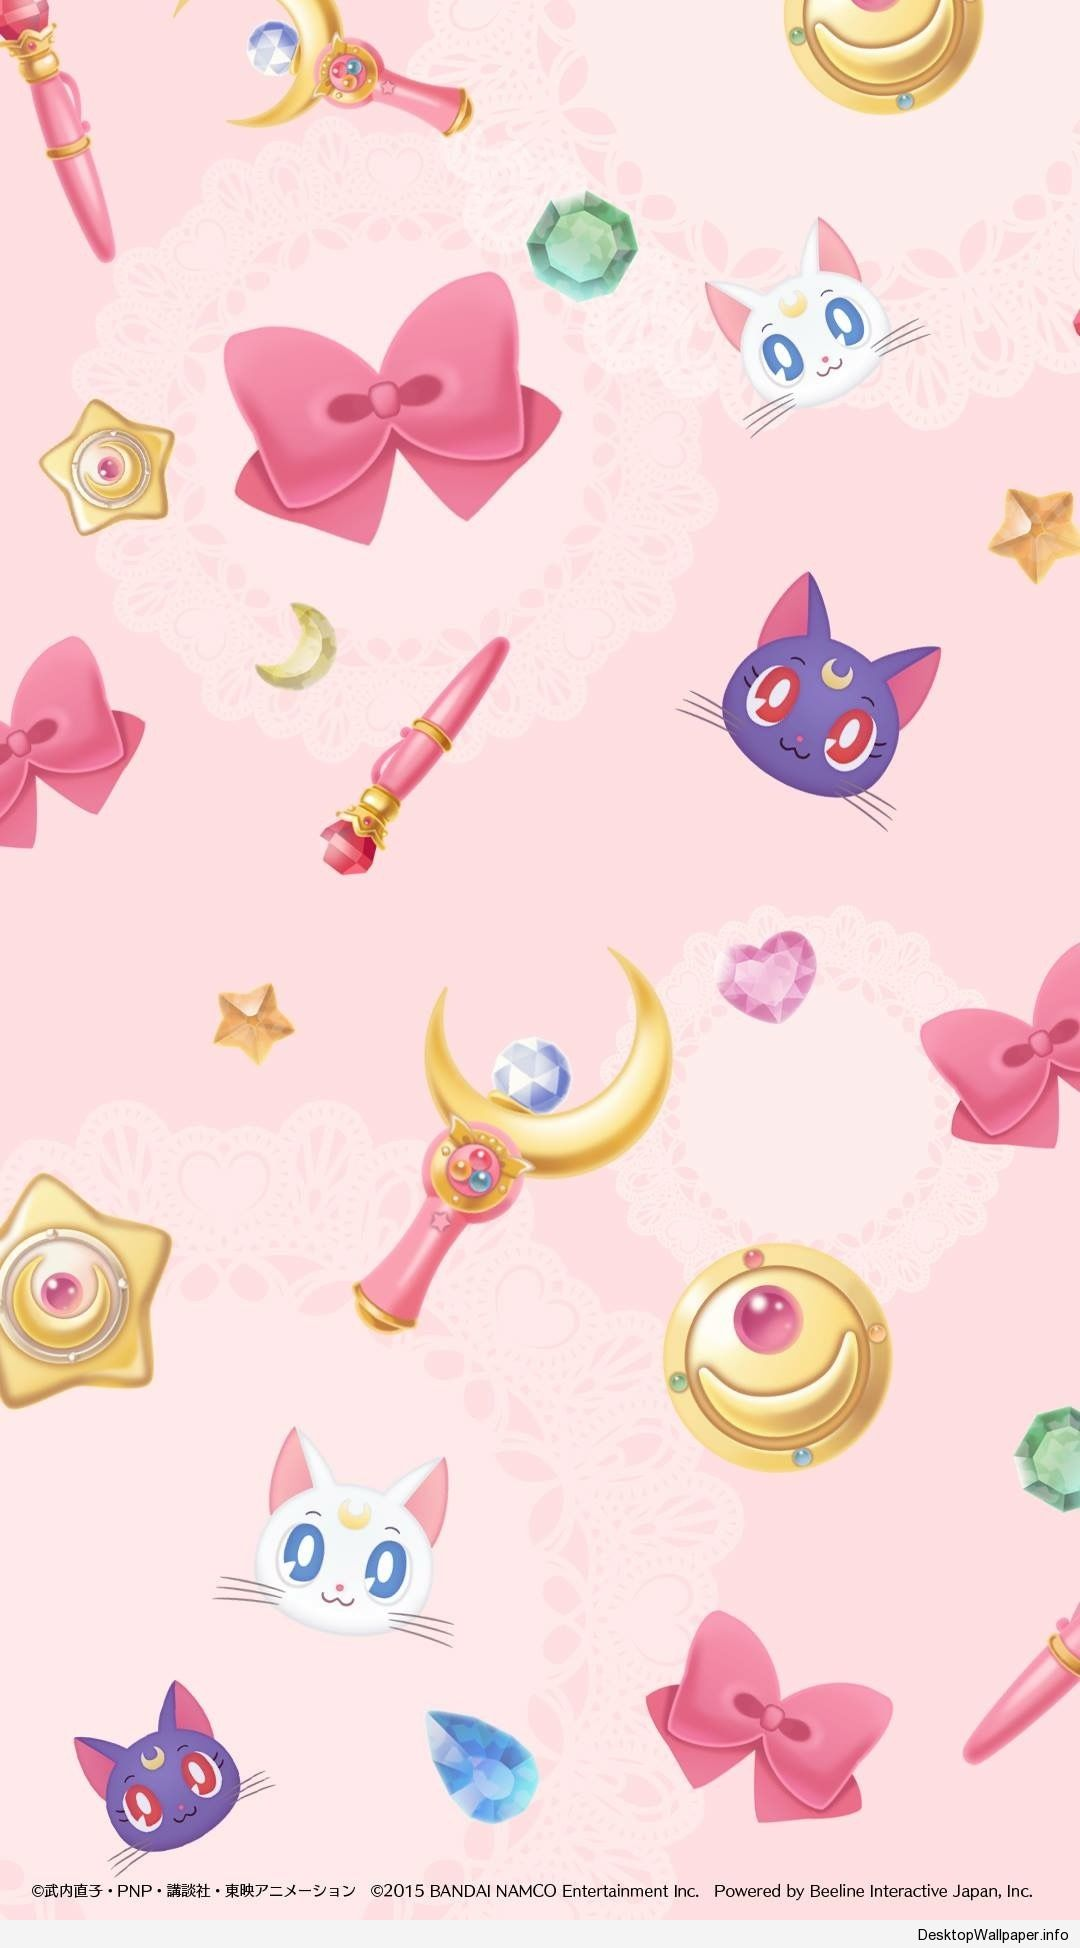 Sailor Moon Smartphone Wallpaper Http Desktopwallpaper Info Sailor Moon Smartphone Wallpaper 6019 Sailor Smartphone W Wallpaper Iphone Kreatif Kartun